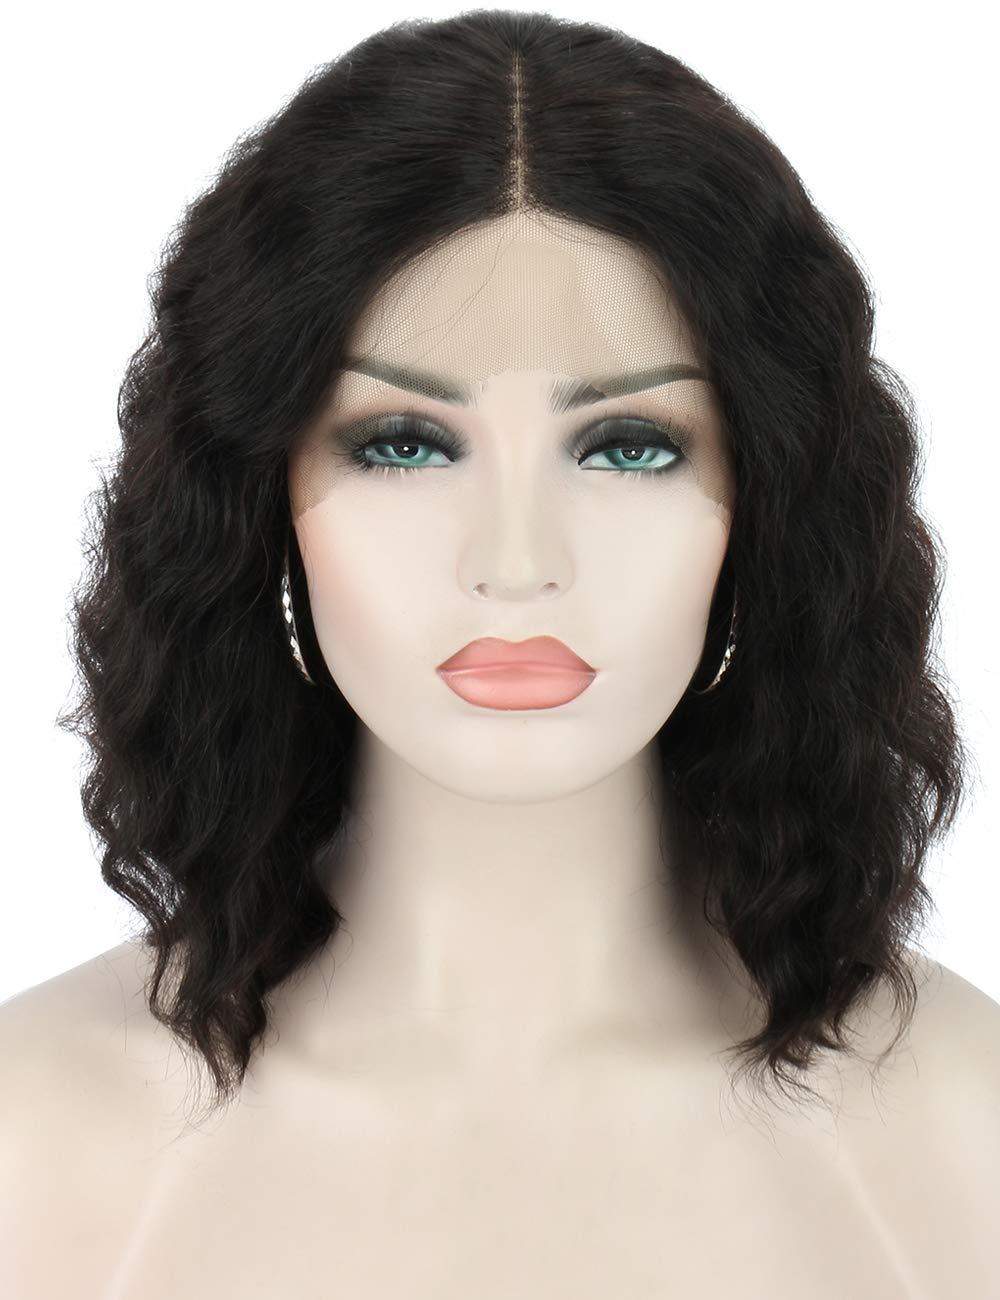 """Beauart Lace Front Wigs Human Hair 12"""" 100% Remy Human Hair Wigs Pre Plucked Short Bob Curly Real Human Hair Wigs for Women with Middle Lace Parting"""